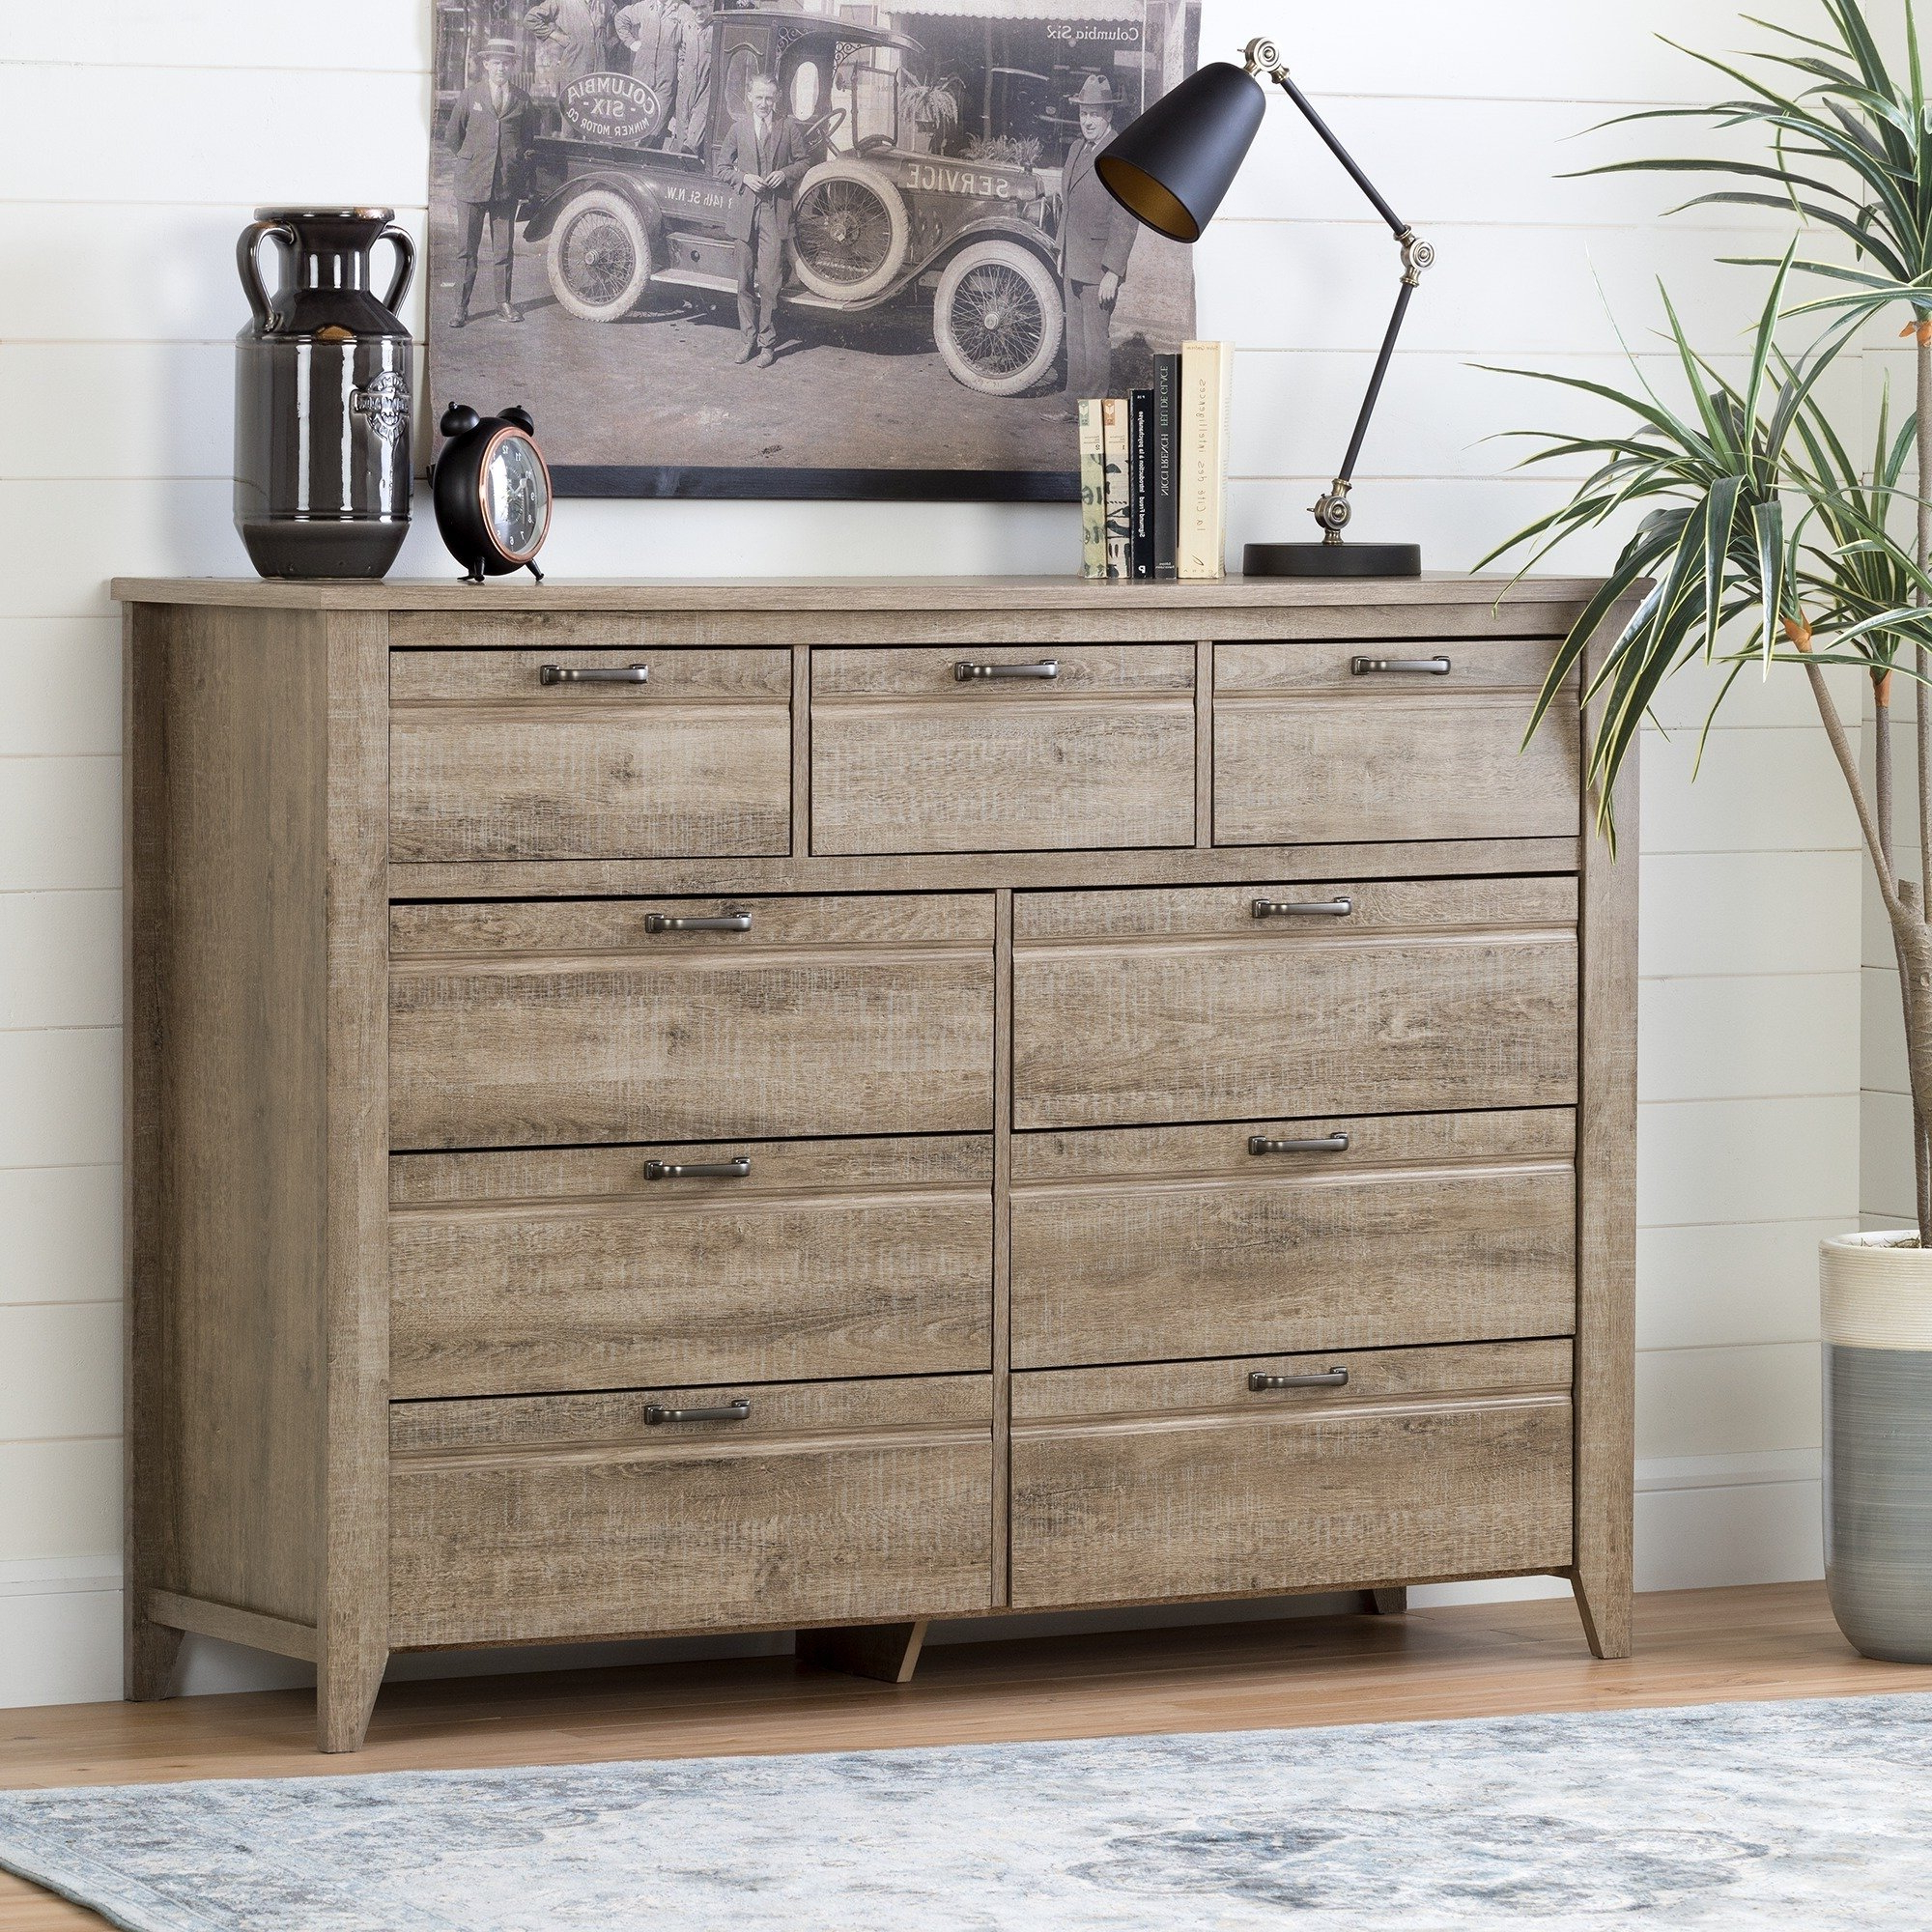 Most Popular Shop South Shore Lionel Sideboard, Weathered Oak – Free Shipping In Natural South Pine Sideboards (View 6 of 20)